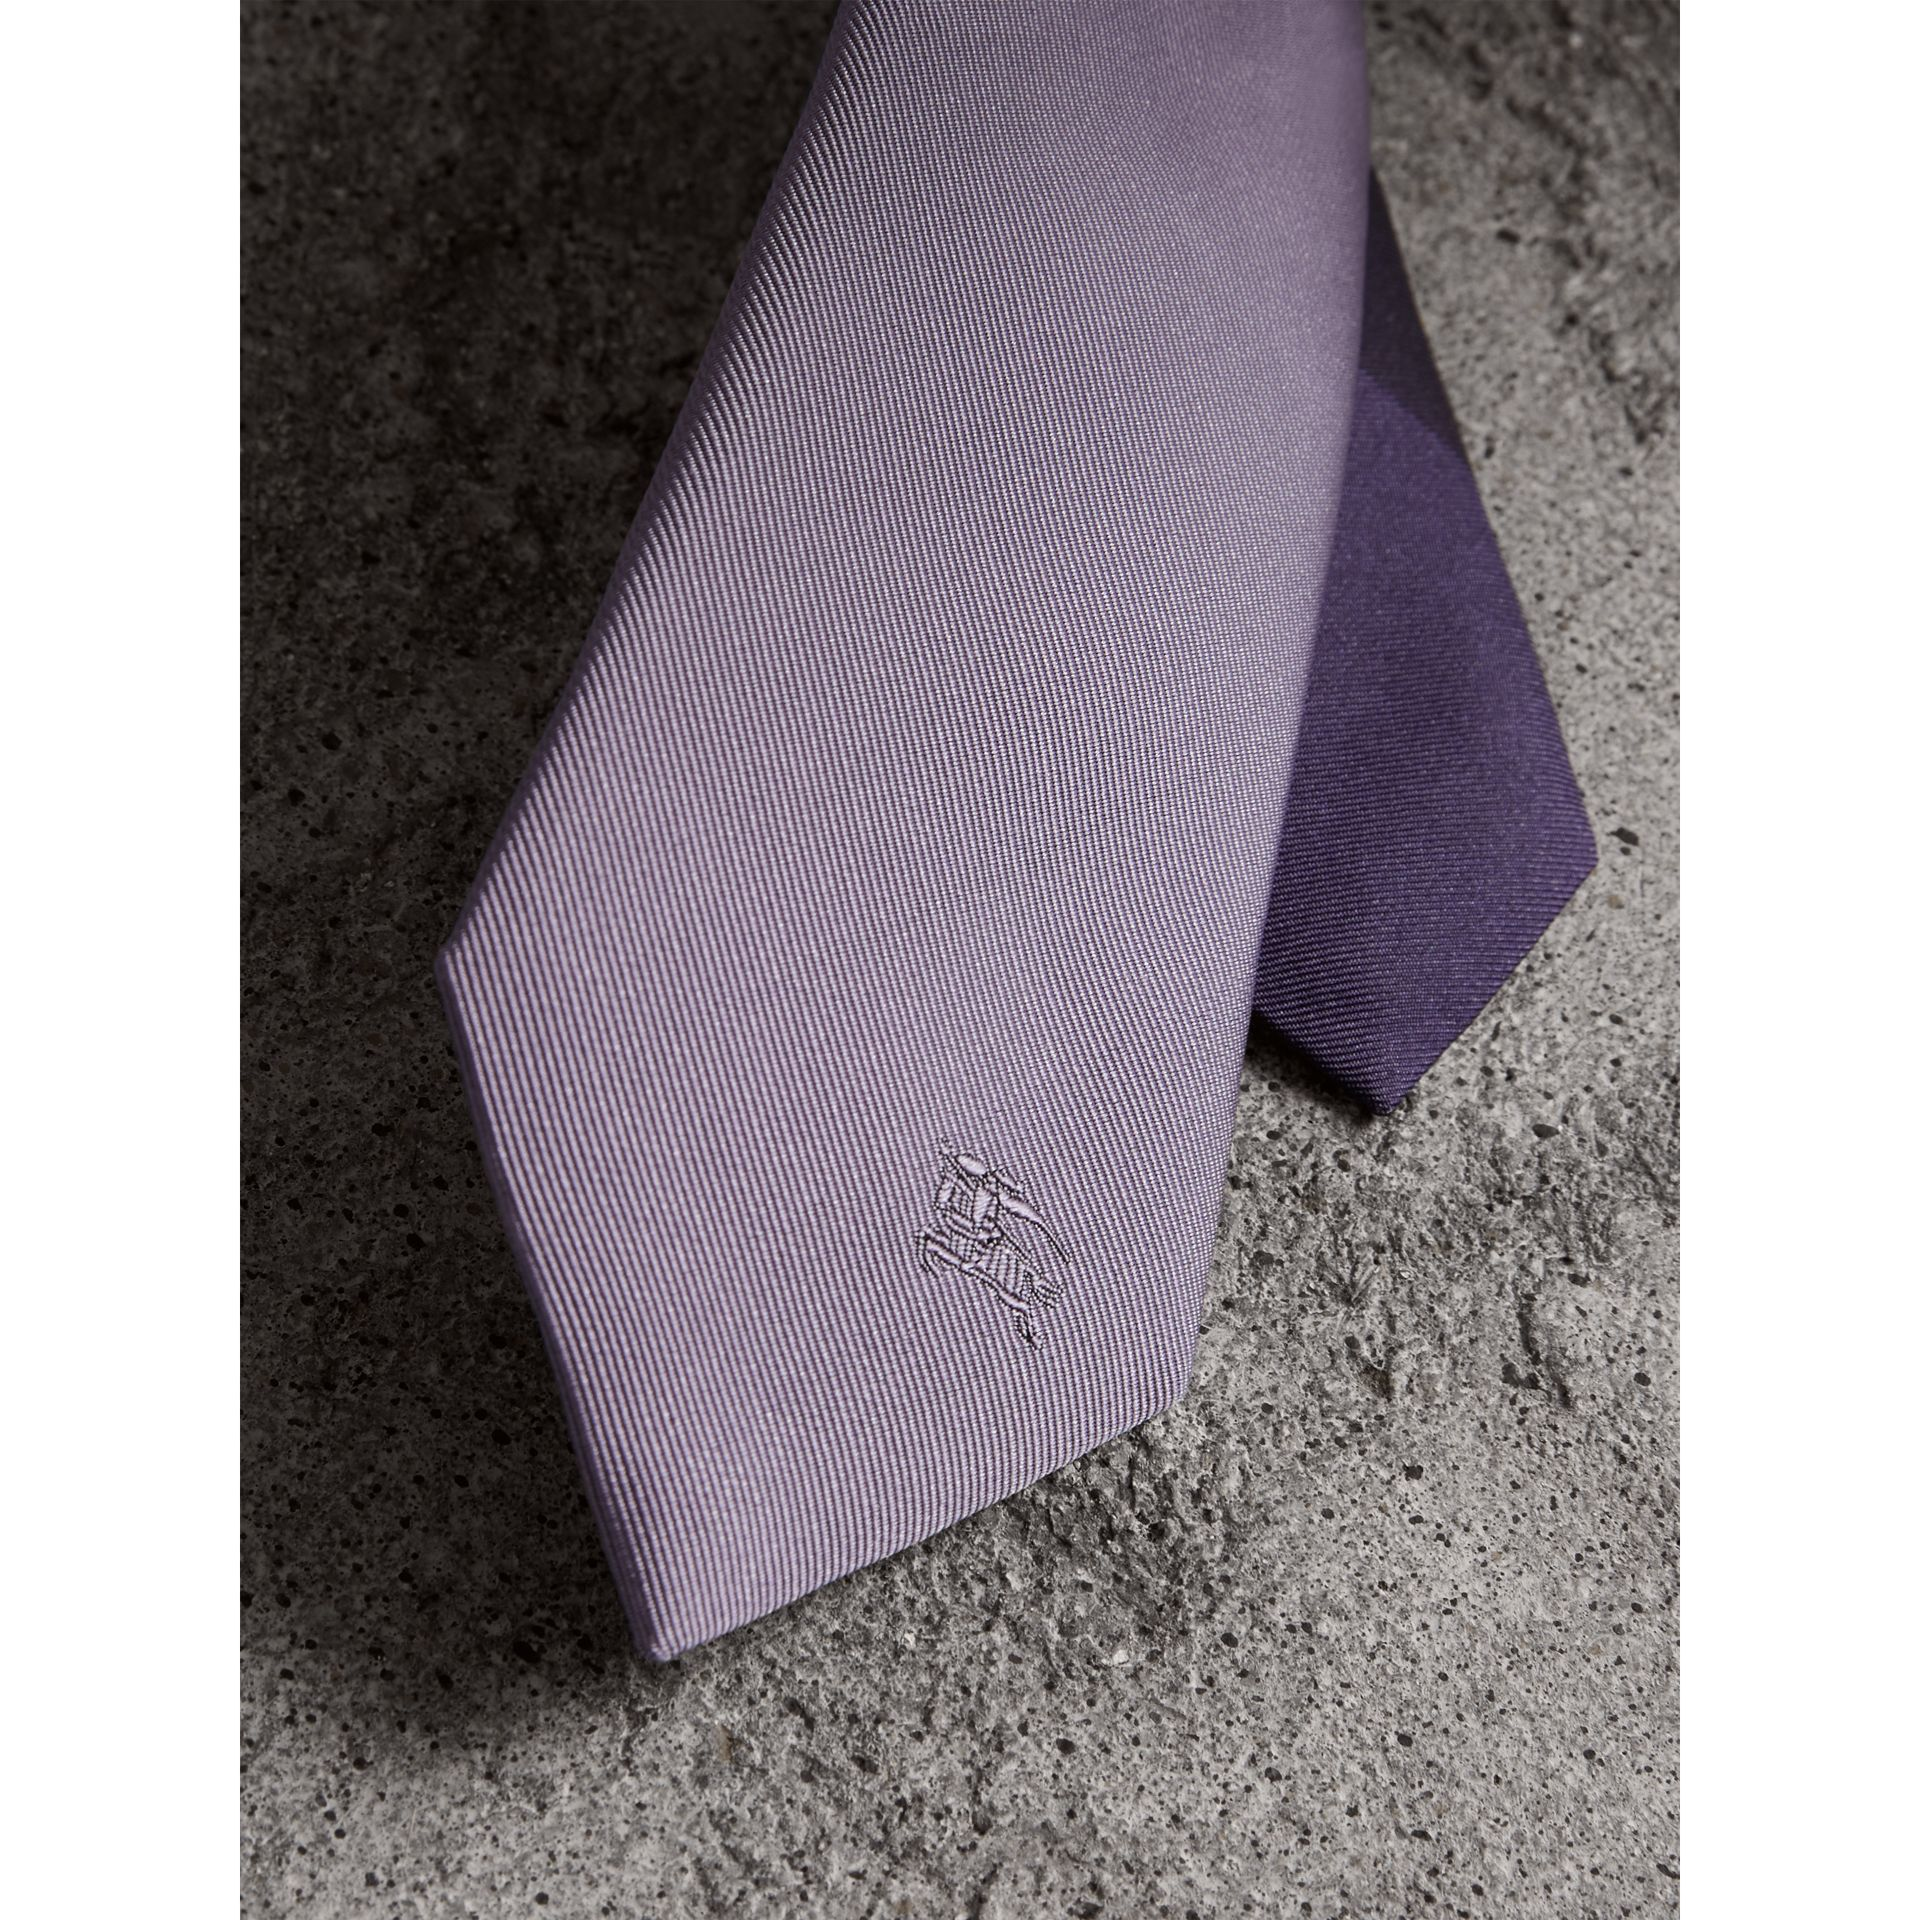 Slim Cut Check Silk Twill Tie in Lilac - Men | Burberry - gallery image 1